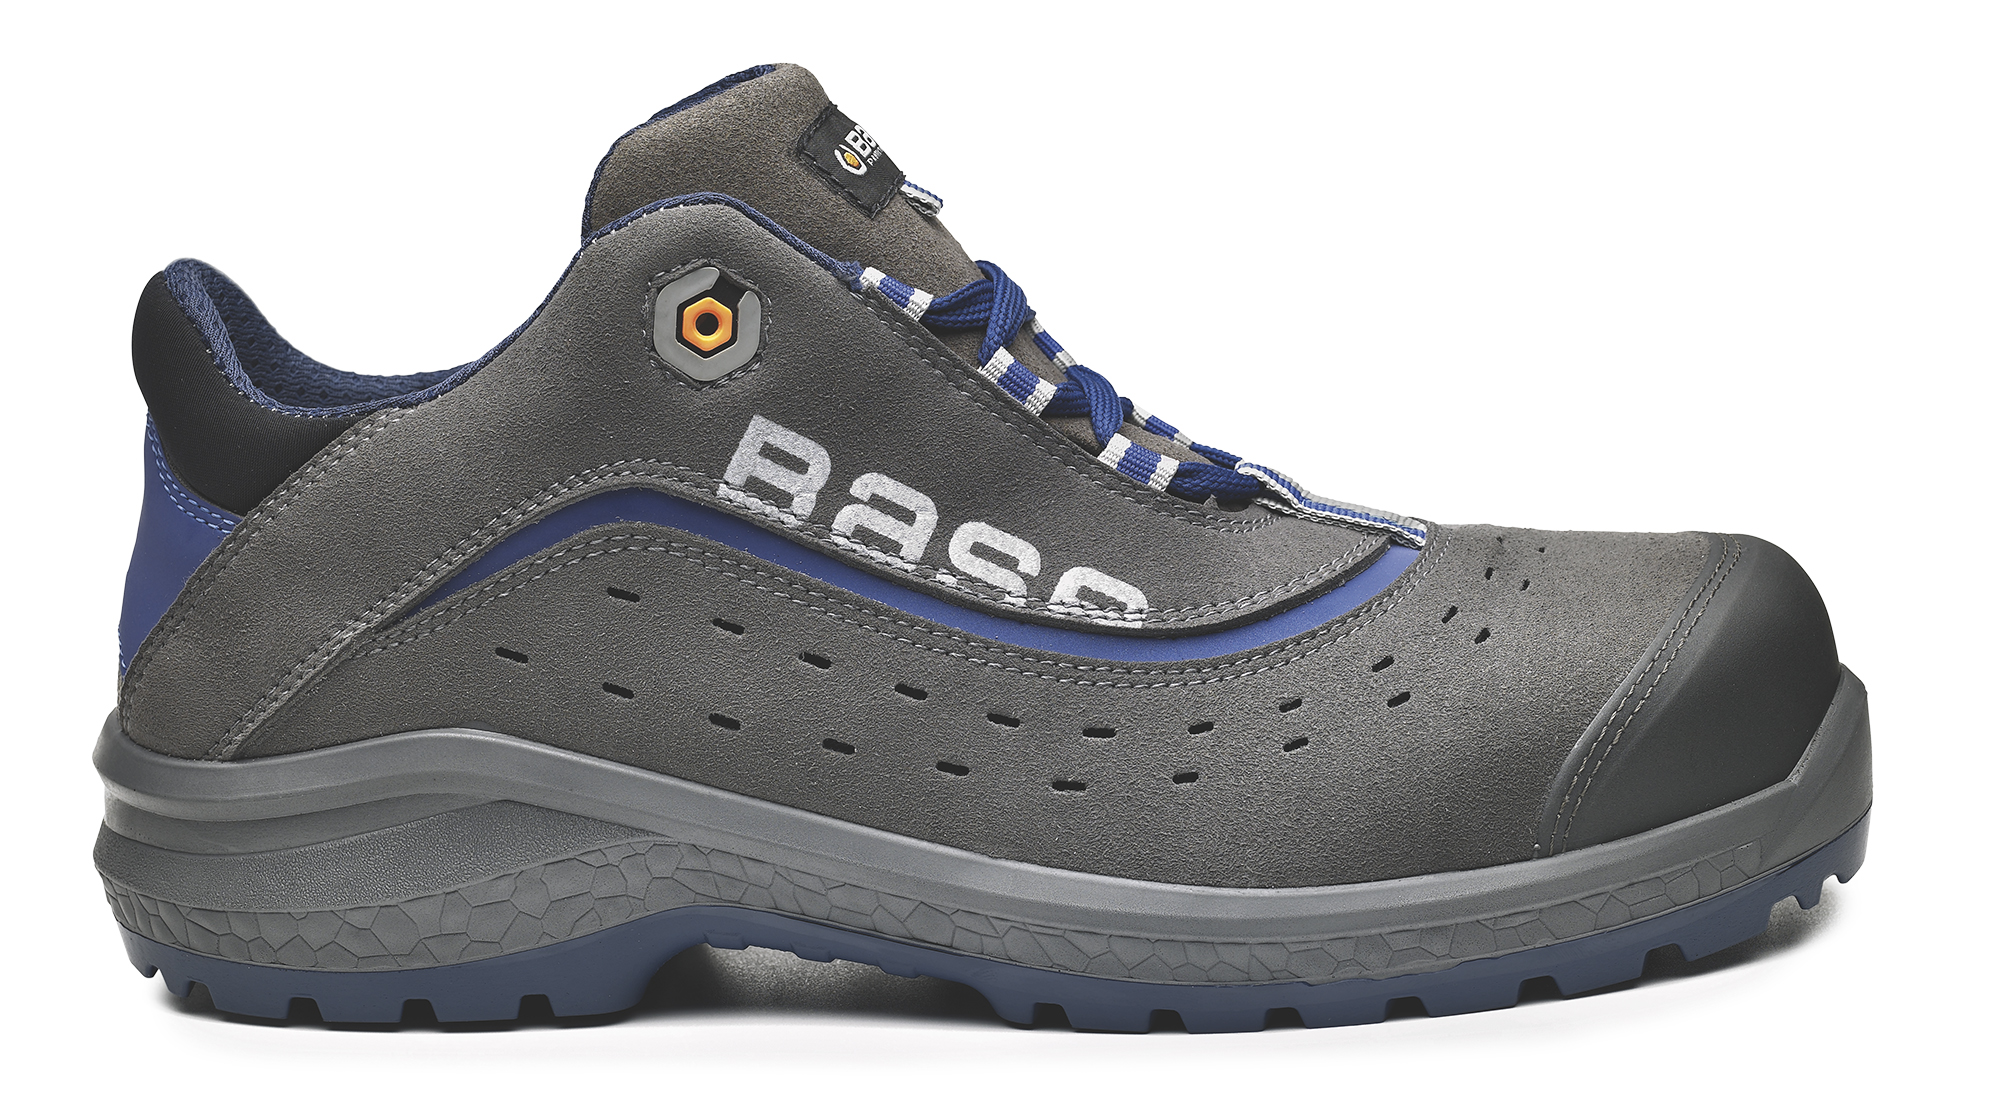 Base BO884 Light S1P Mens NonSlip Safety Laced Trainer Shoe | EBay